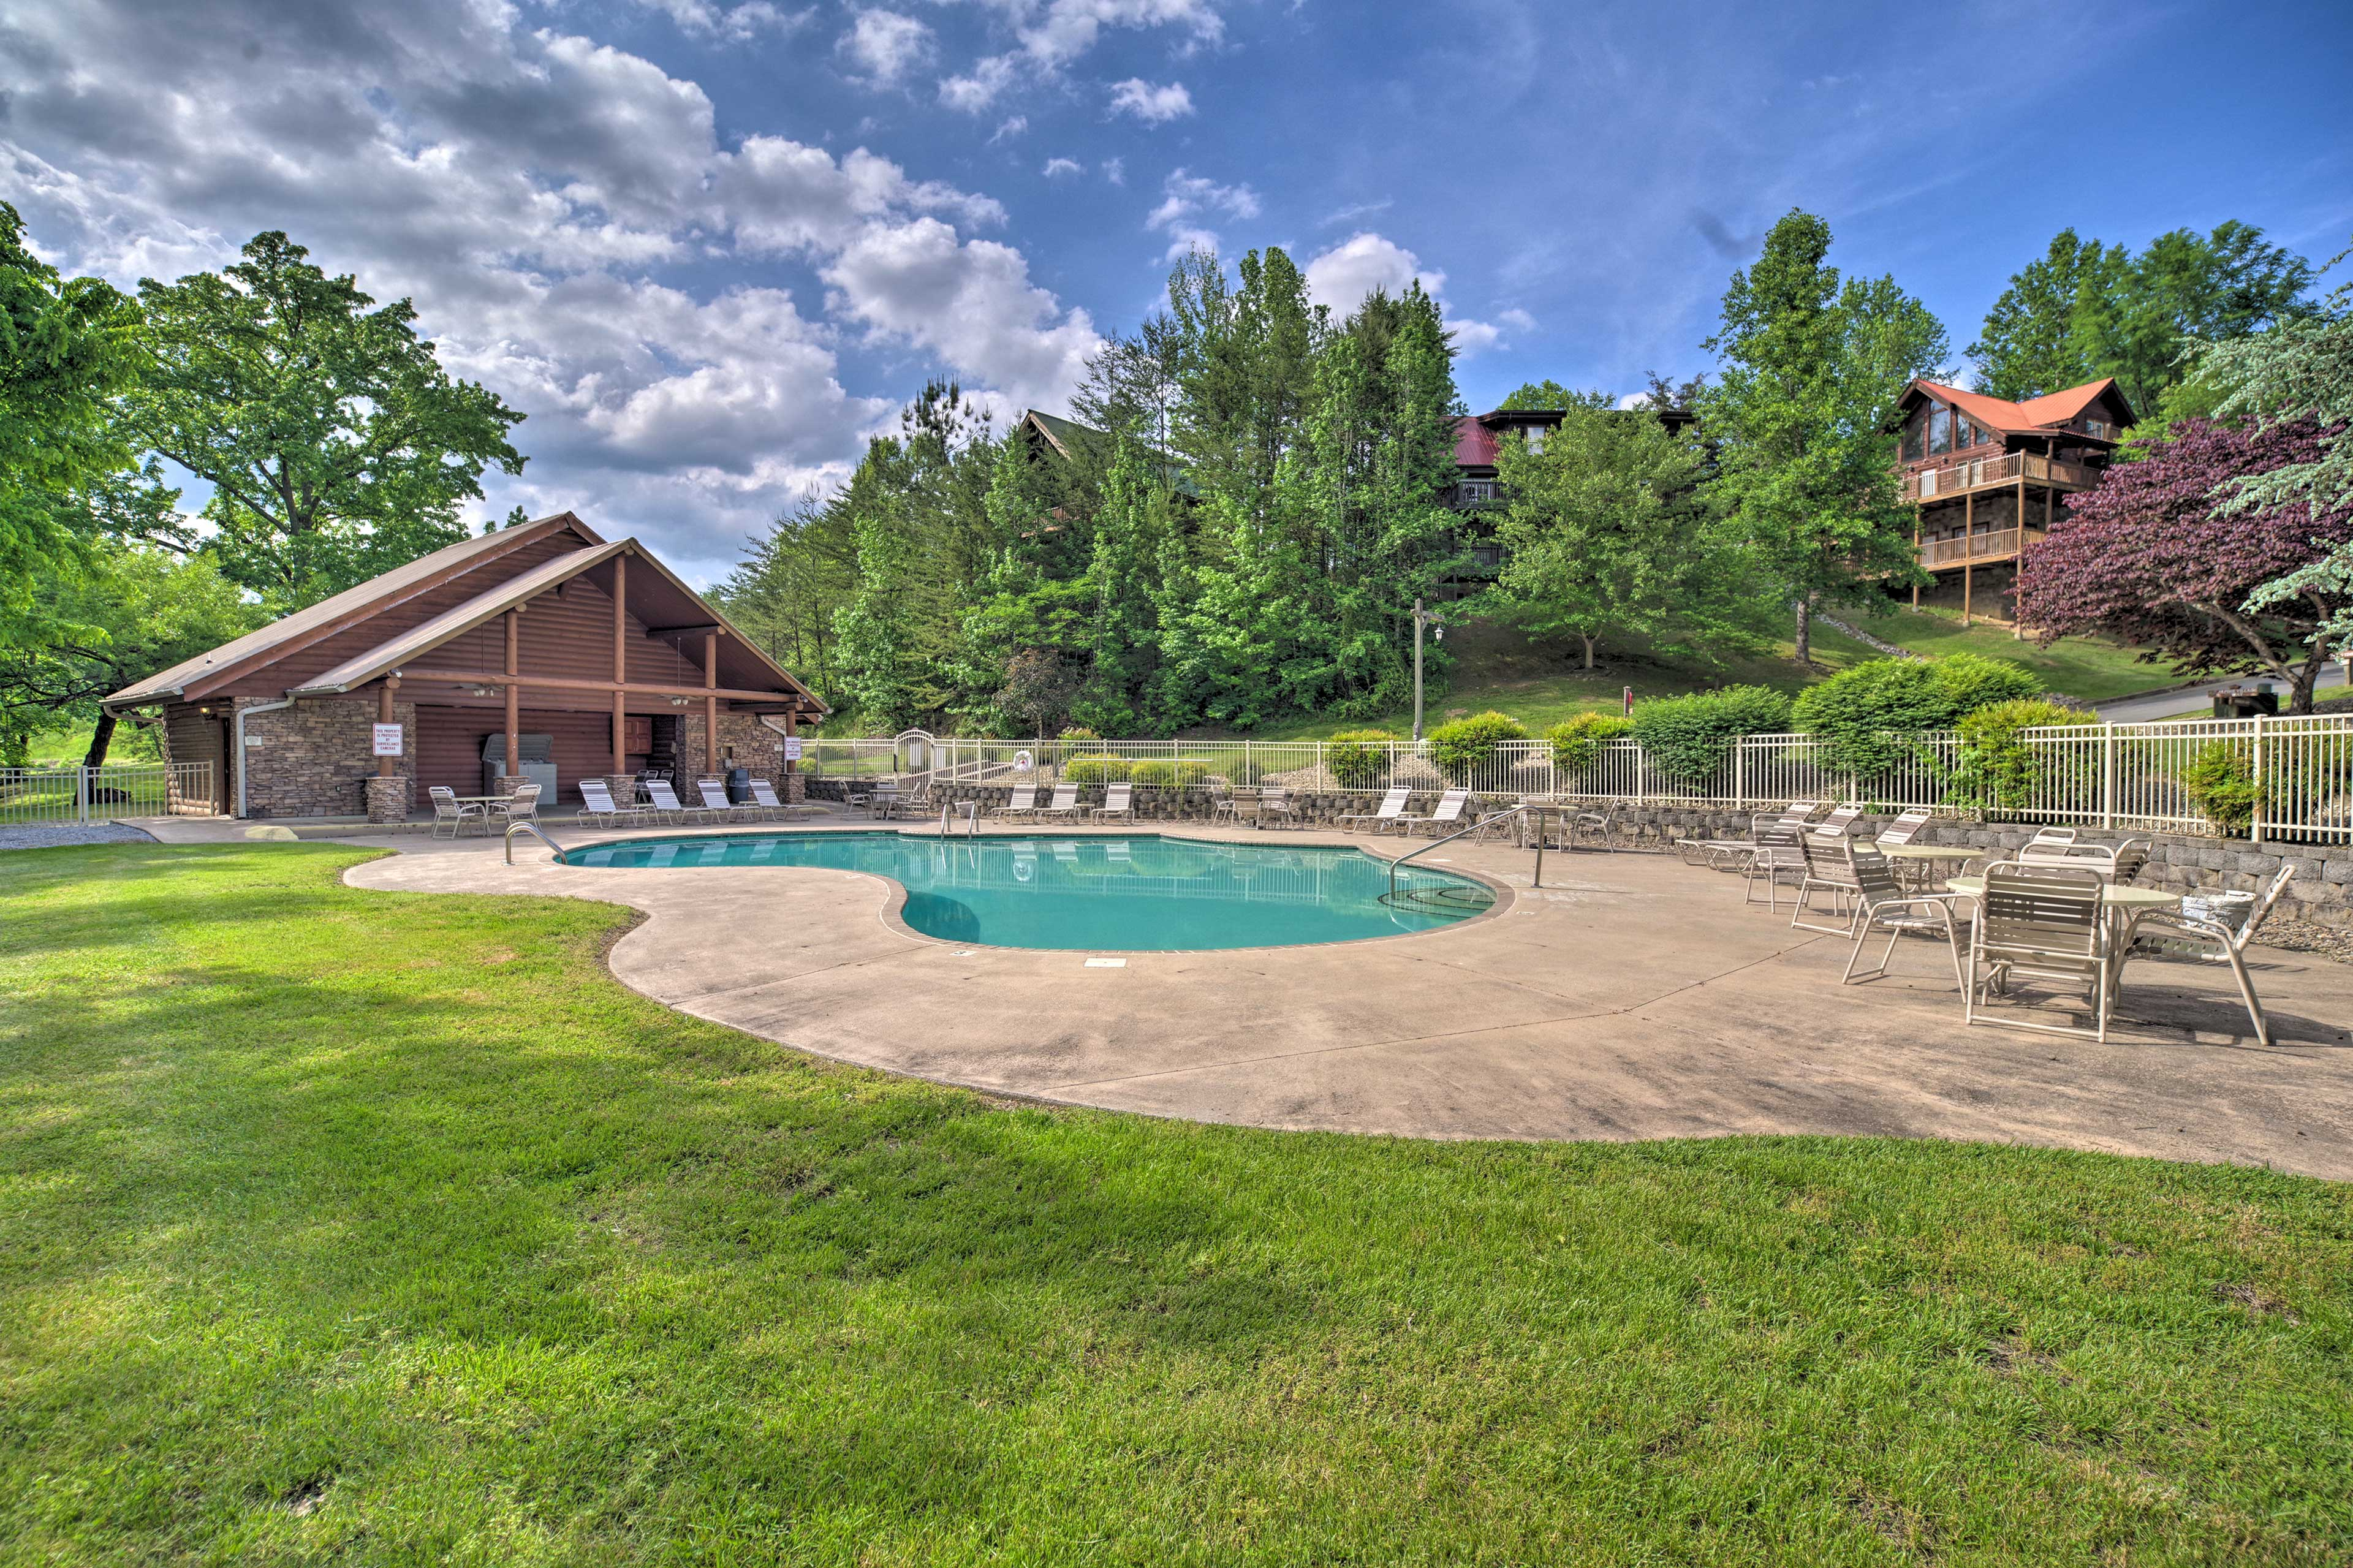 Cool off with a swim in one of the 2 community pools.